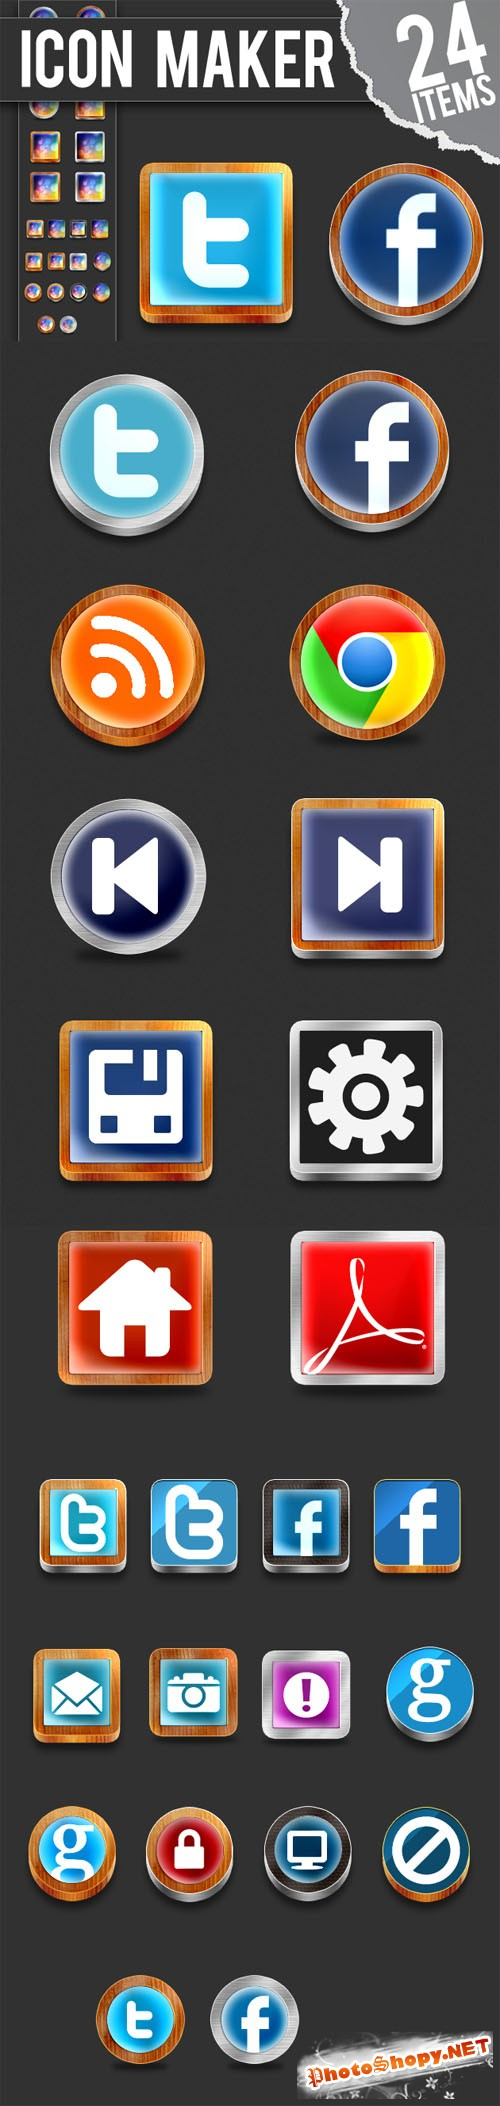 Designtnt - Photoshop Icon Maker